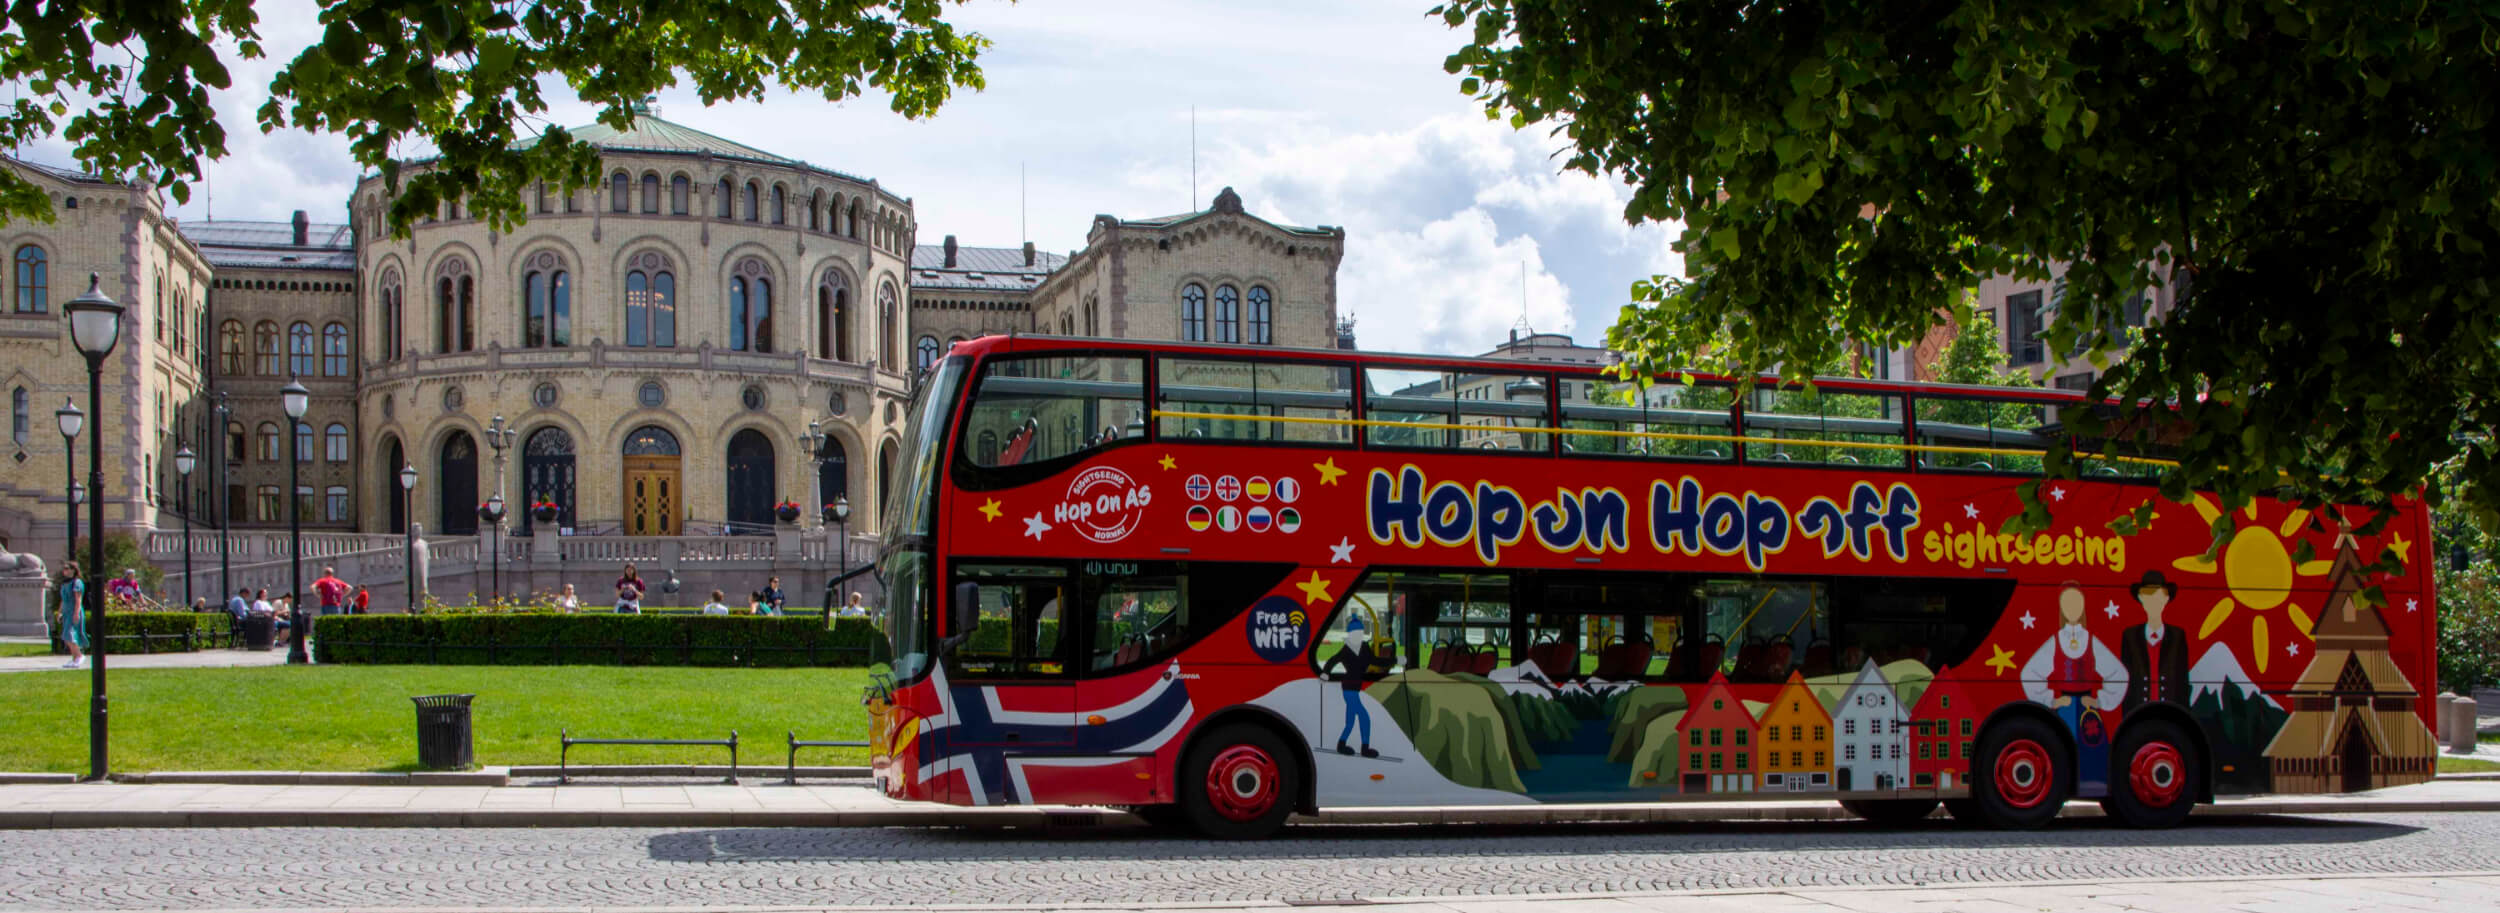 Hop on Hop off bus outside the Norwegian Parliament